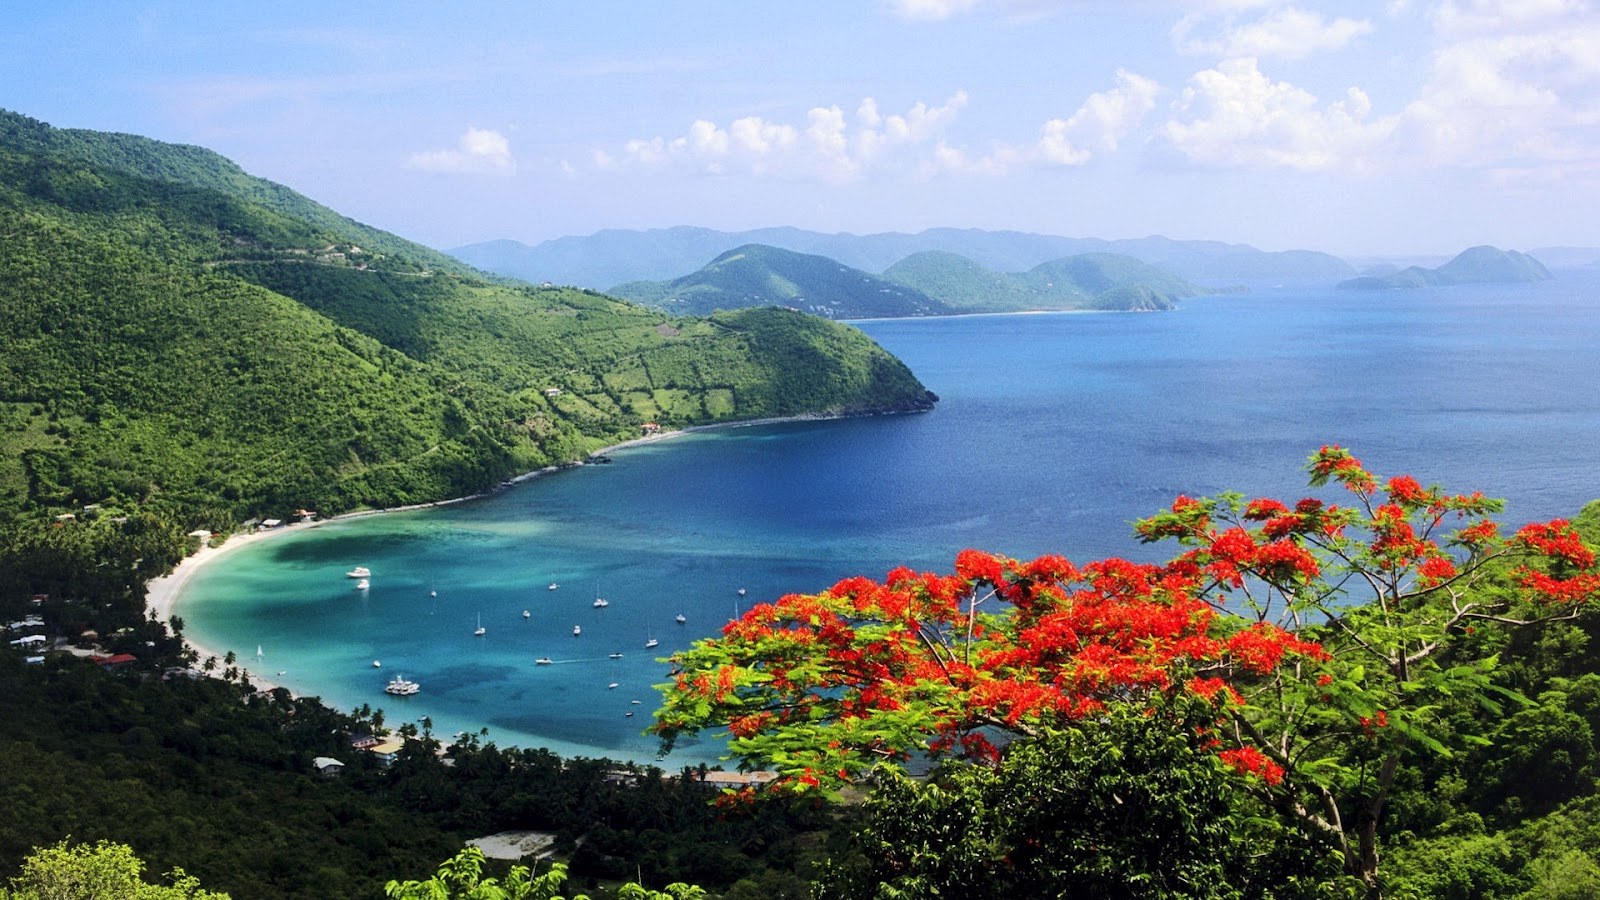 Beautiful Island Pictures For Wallpaper: FREE-PHOTOSHOP BACKGROUNDS-HIGH-RESOLUTION WALLPAPERS